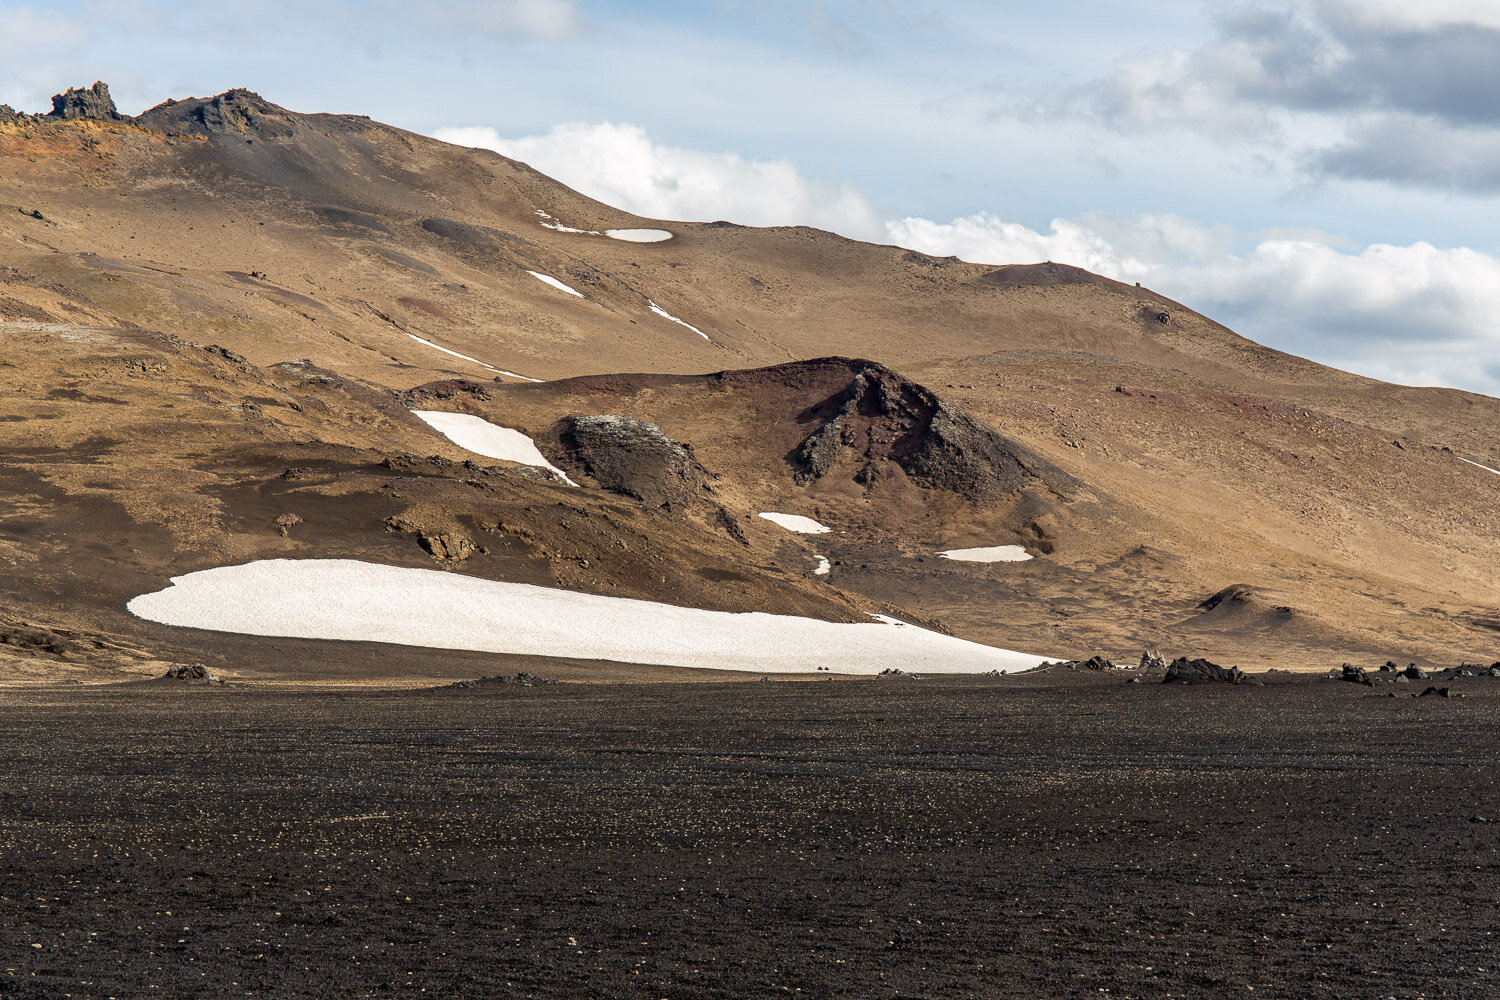 Crater and snow